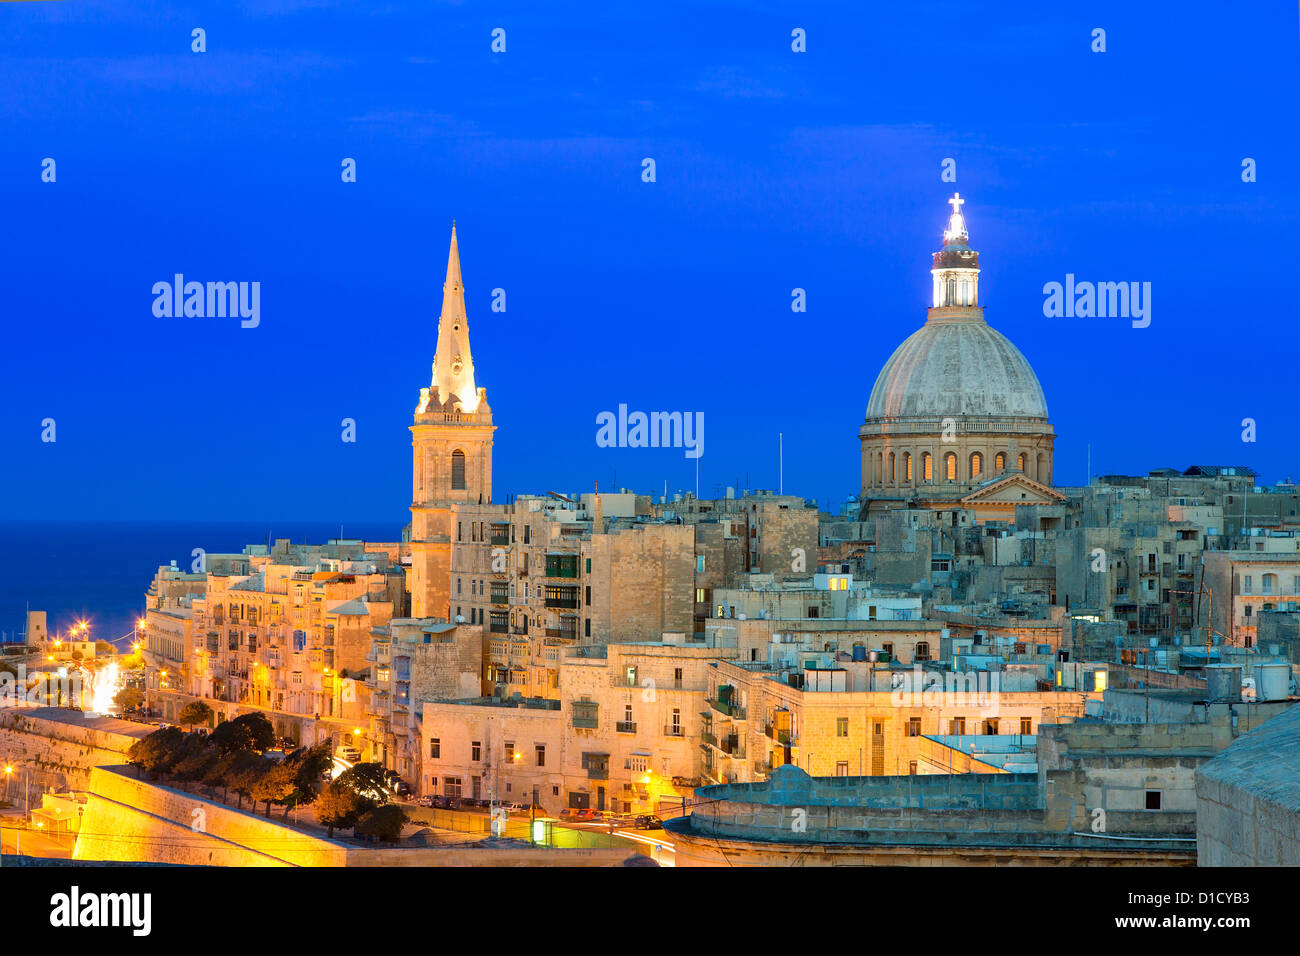 Malta, Valletta, skyline with St. Paul's Anglican Cathedral and Carmelite Church Stock Photo